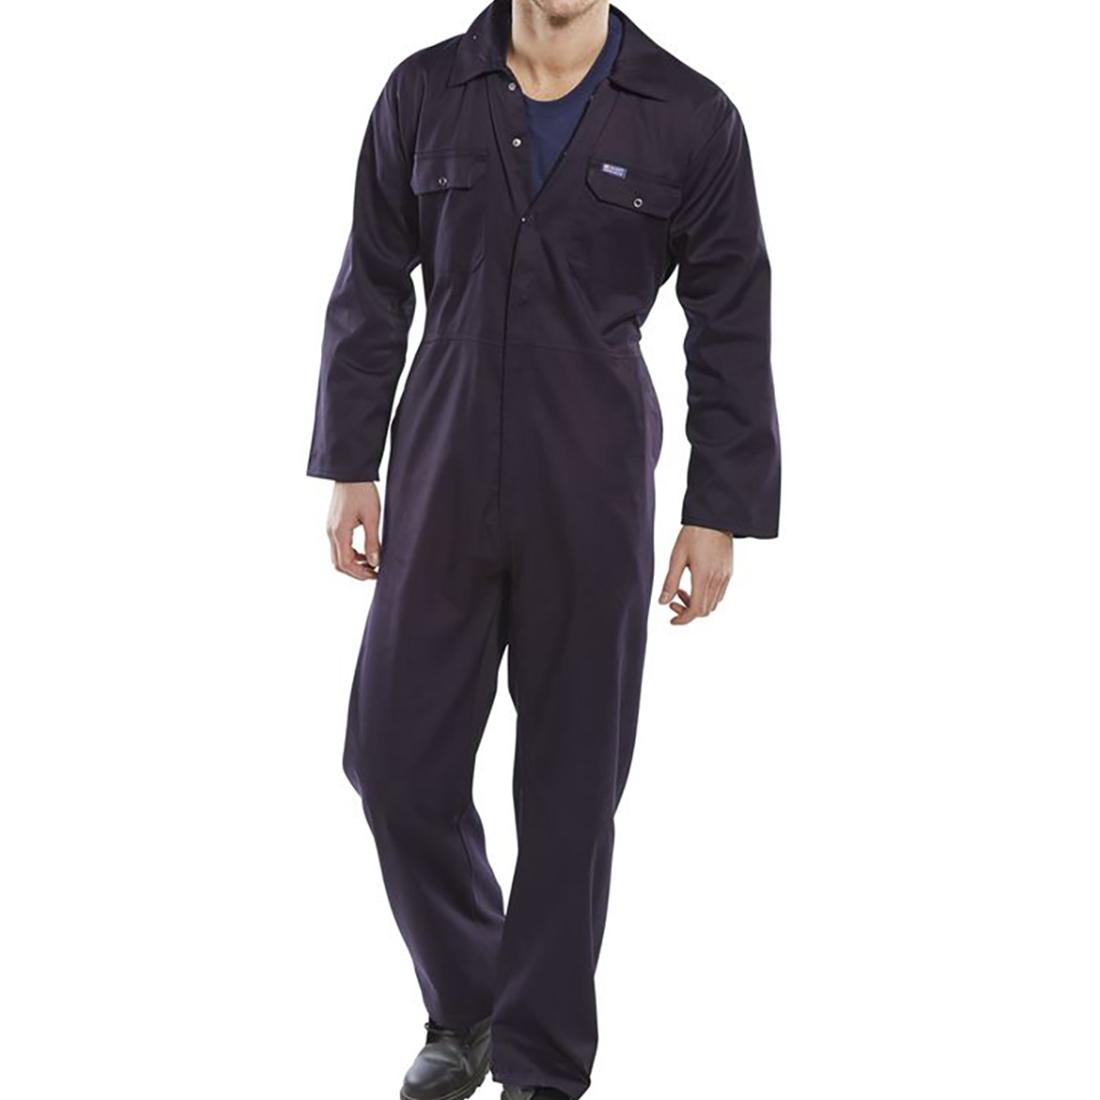 Coveralls / Overalls Coverall Basic with Popper Front Opening Polycotton XXLarge Navy Ref RPCBSN50 *Approx 3 Day Leadtime*